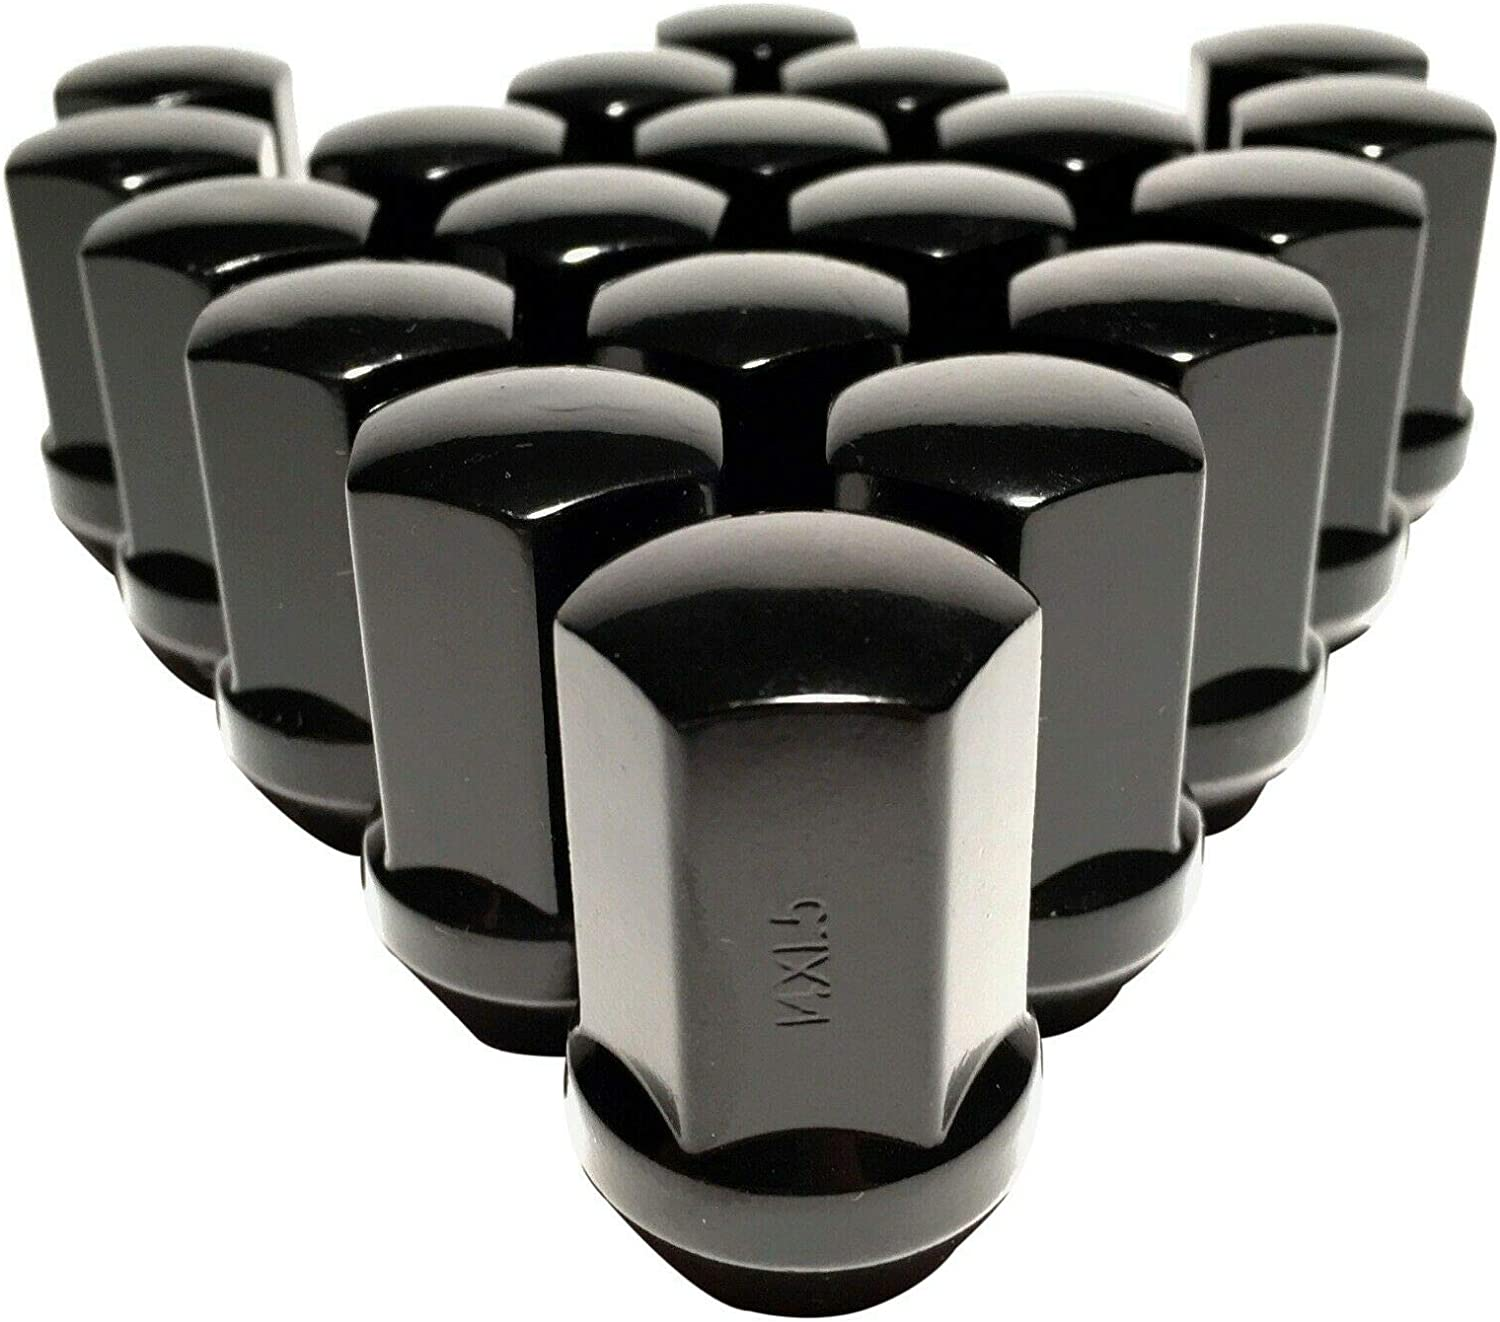 Coyote 20 Black 14x1.5 OEM Lug Nuts Compatible with RAM 1500 Durango Factory Wheel Lugs 1.5 Tall